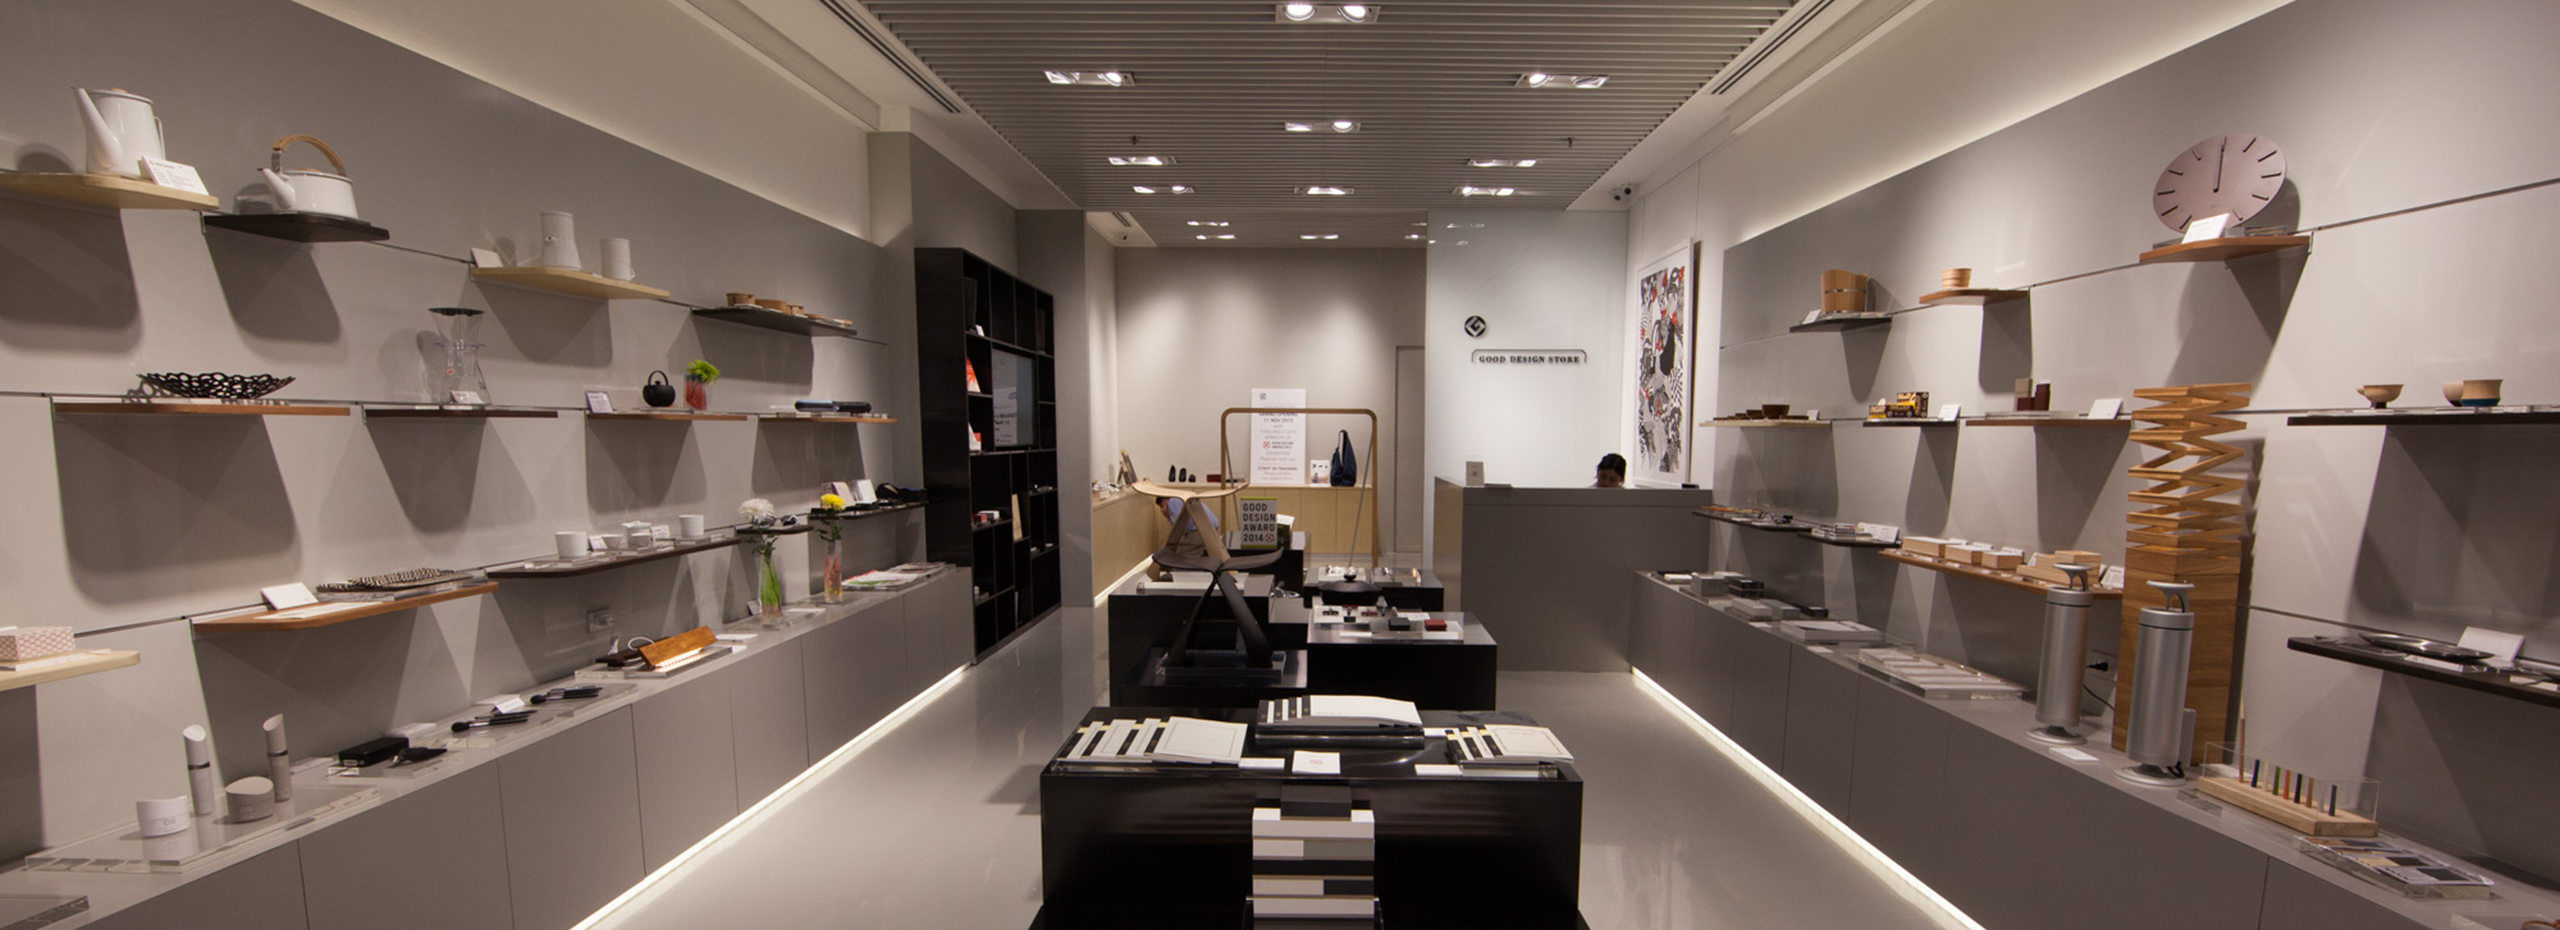 The Good Design Store Is The Good Design Awardu0027s First Permanent Sales And  Promotional Facility To Open Overseas. The Good Design Store, Which  Combines A ...